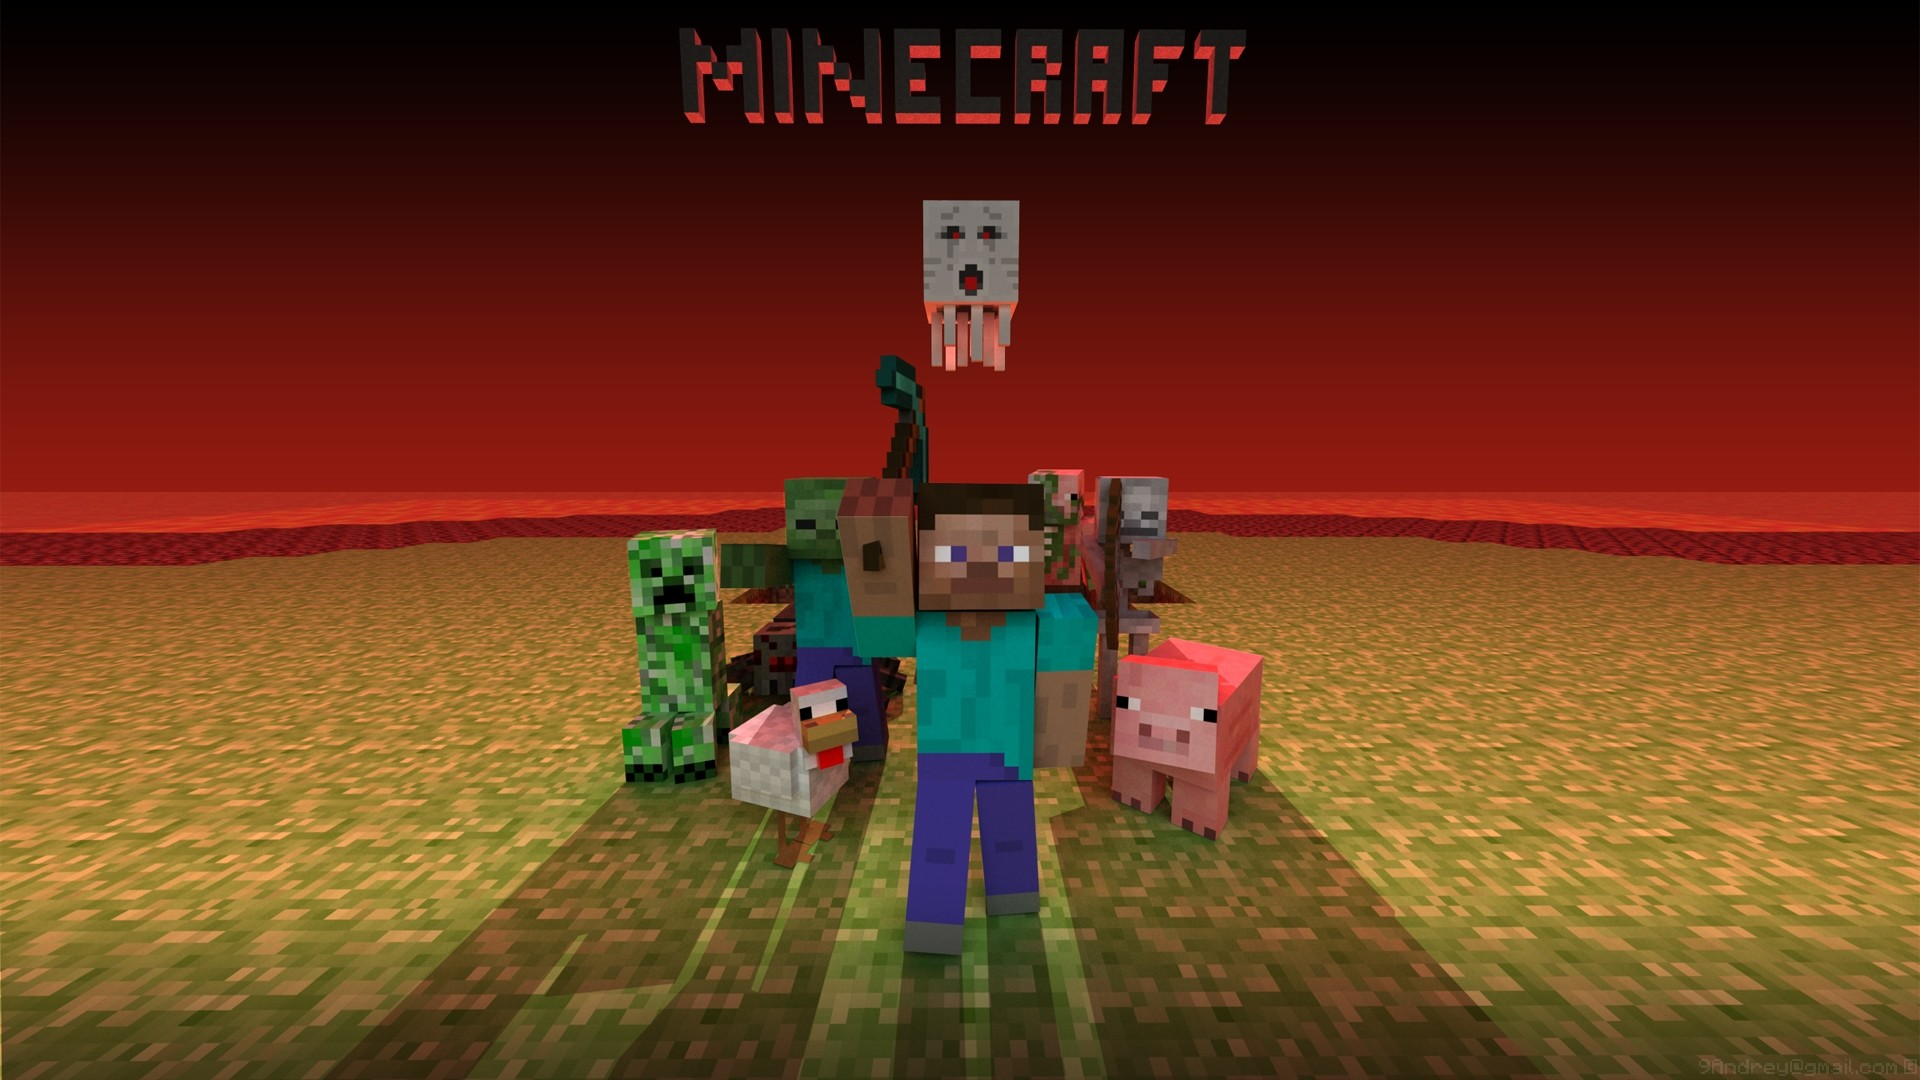 1920x1080 wallpaper minecraft mobs creeper snake zombie chicken pig man pixels windows  high definiton pictures 1920×1080 Wallpaper HD